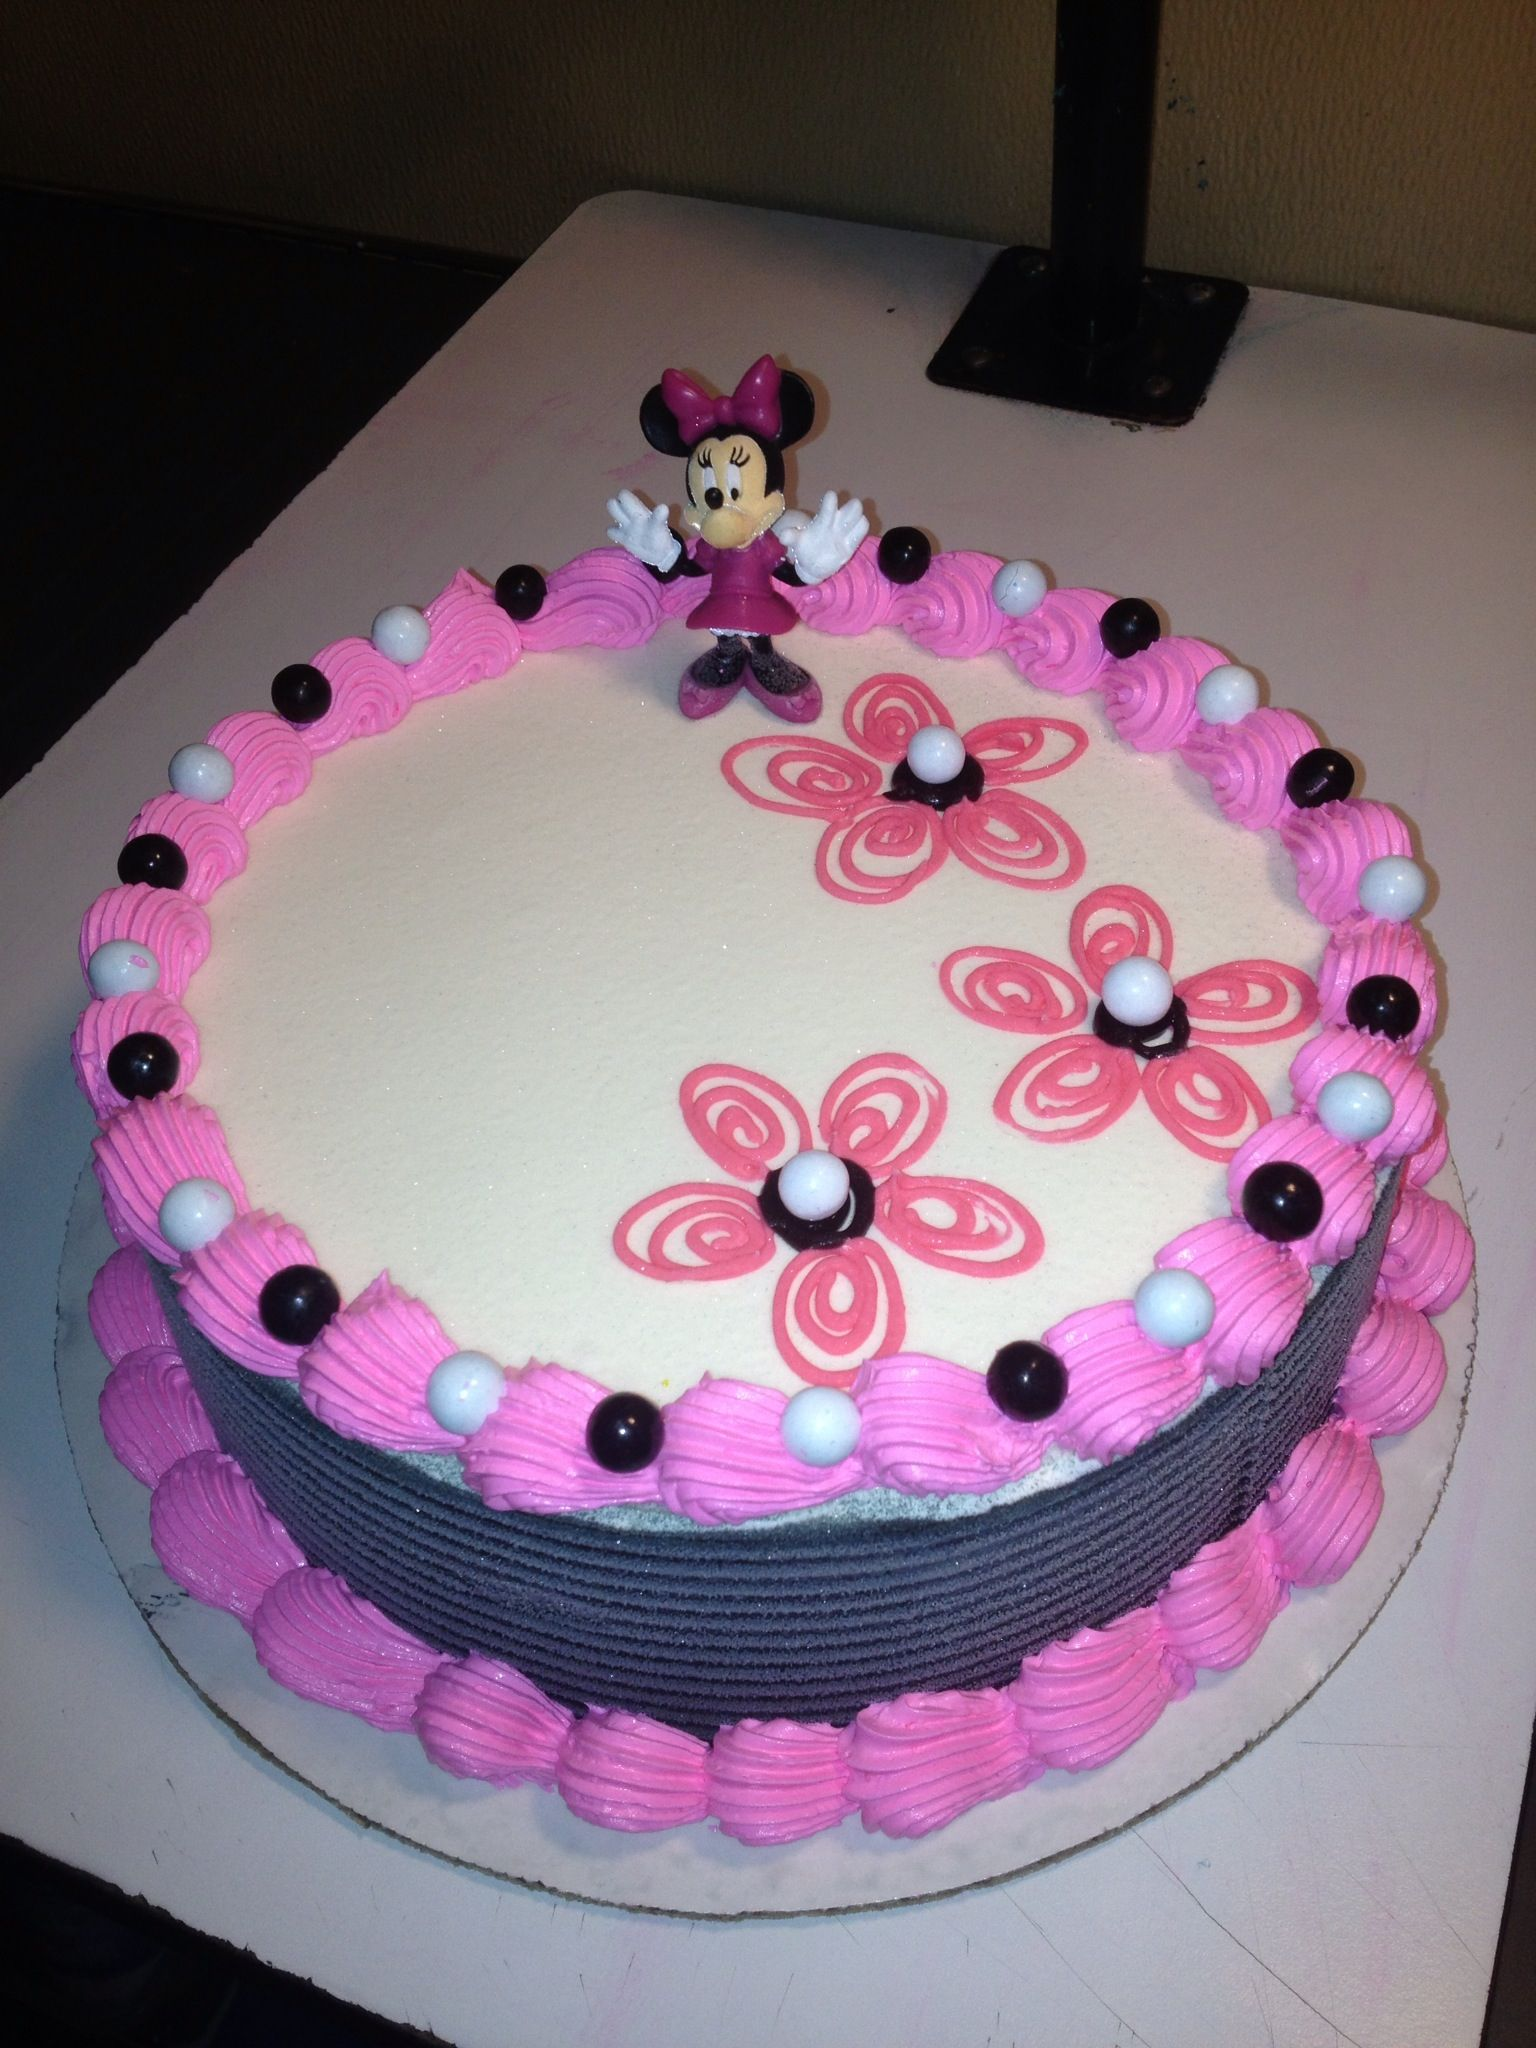 DQ cakesDairy Queen Cakes Minnie Mouse Piping Ideas